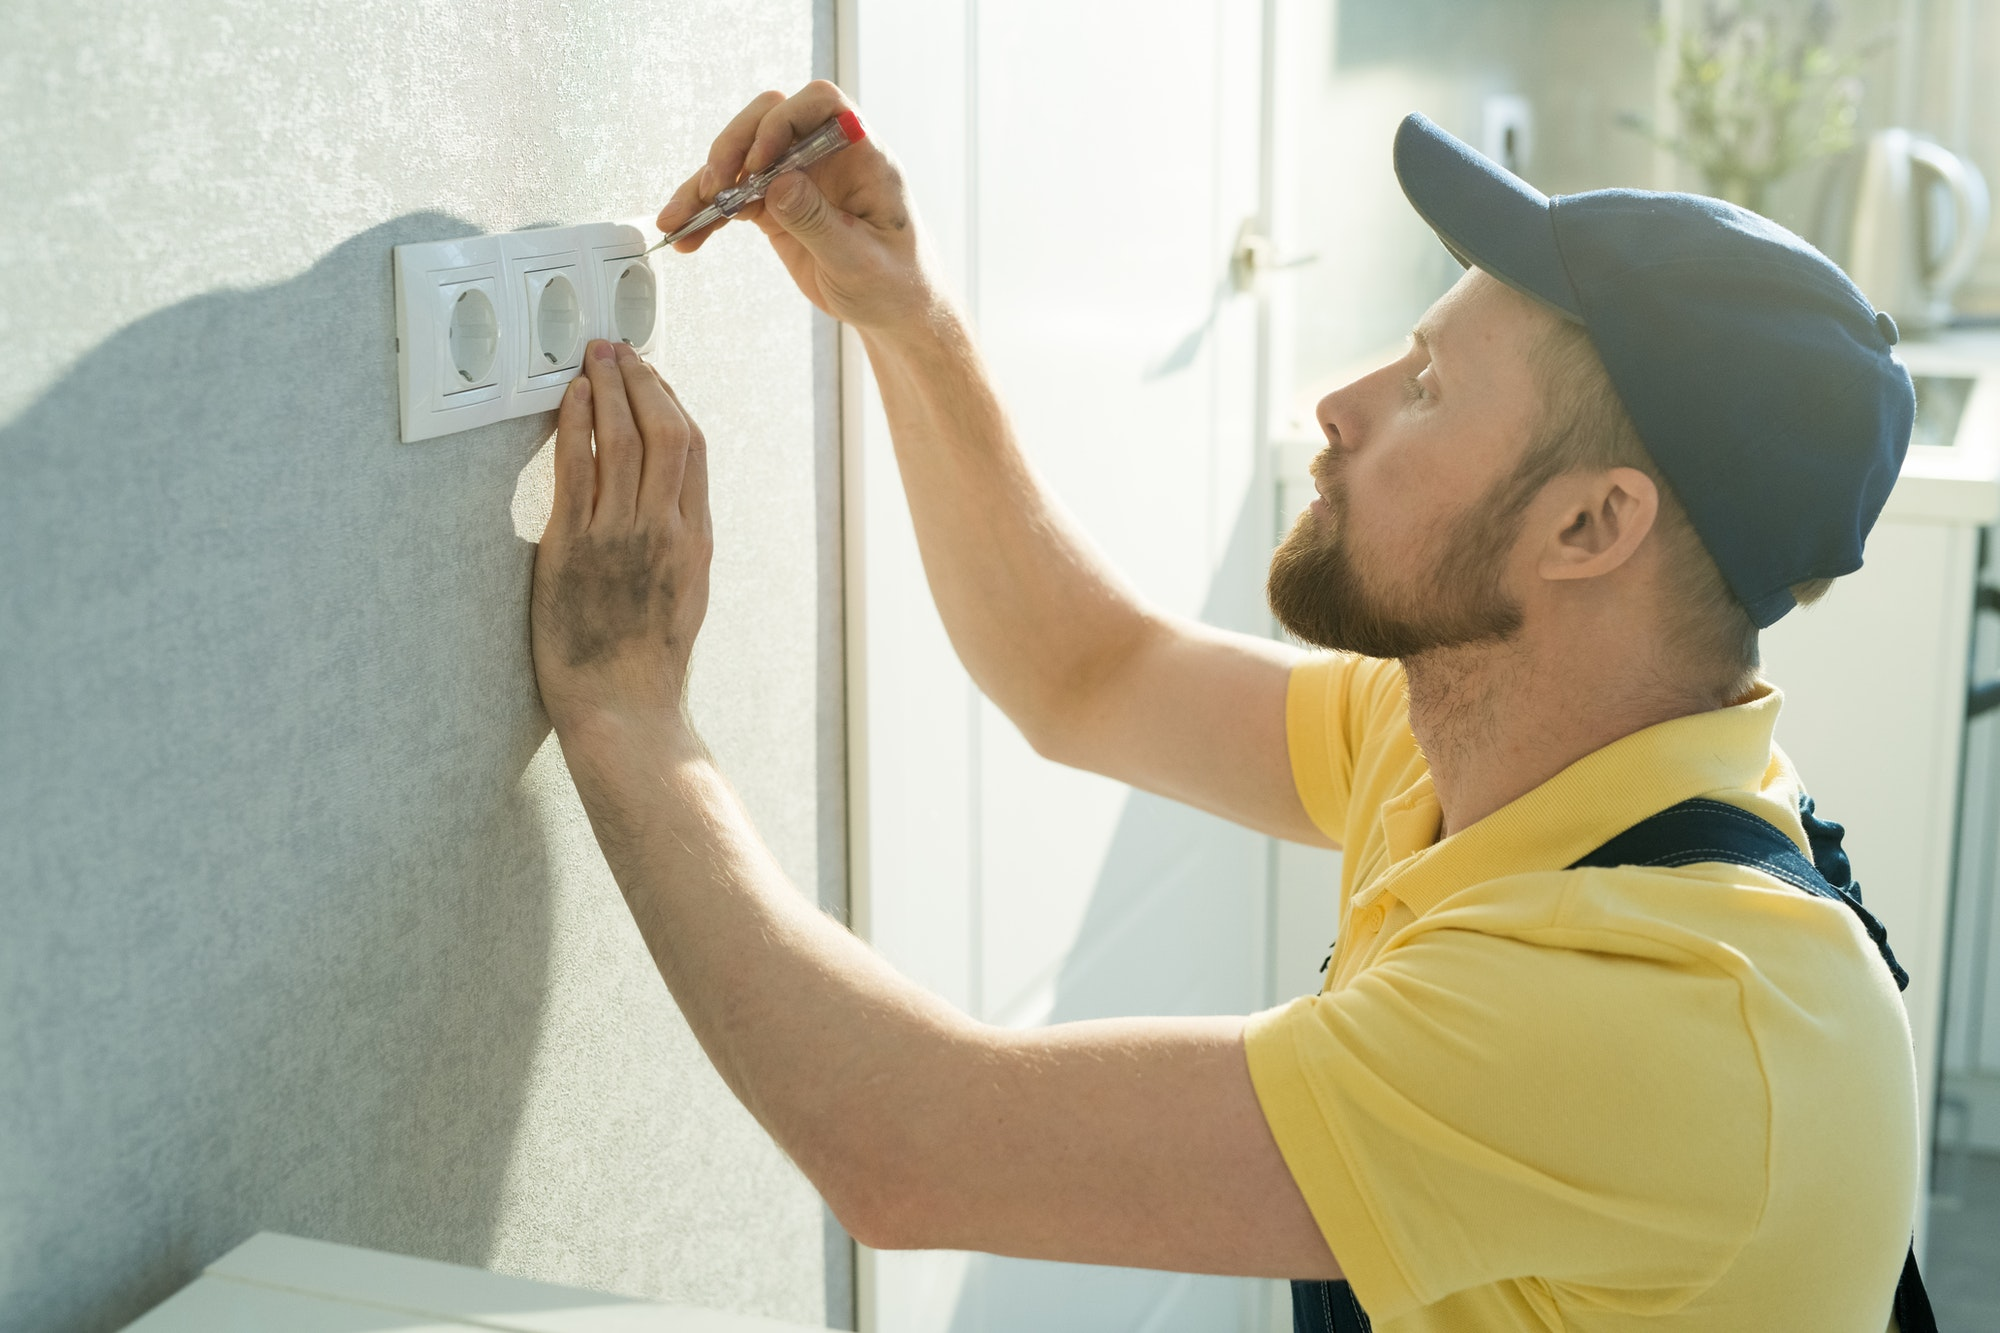 Installing electric outlet